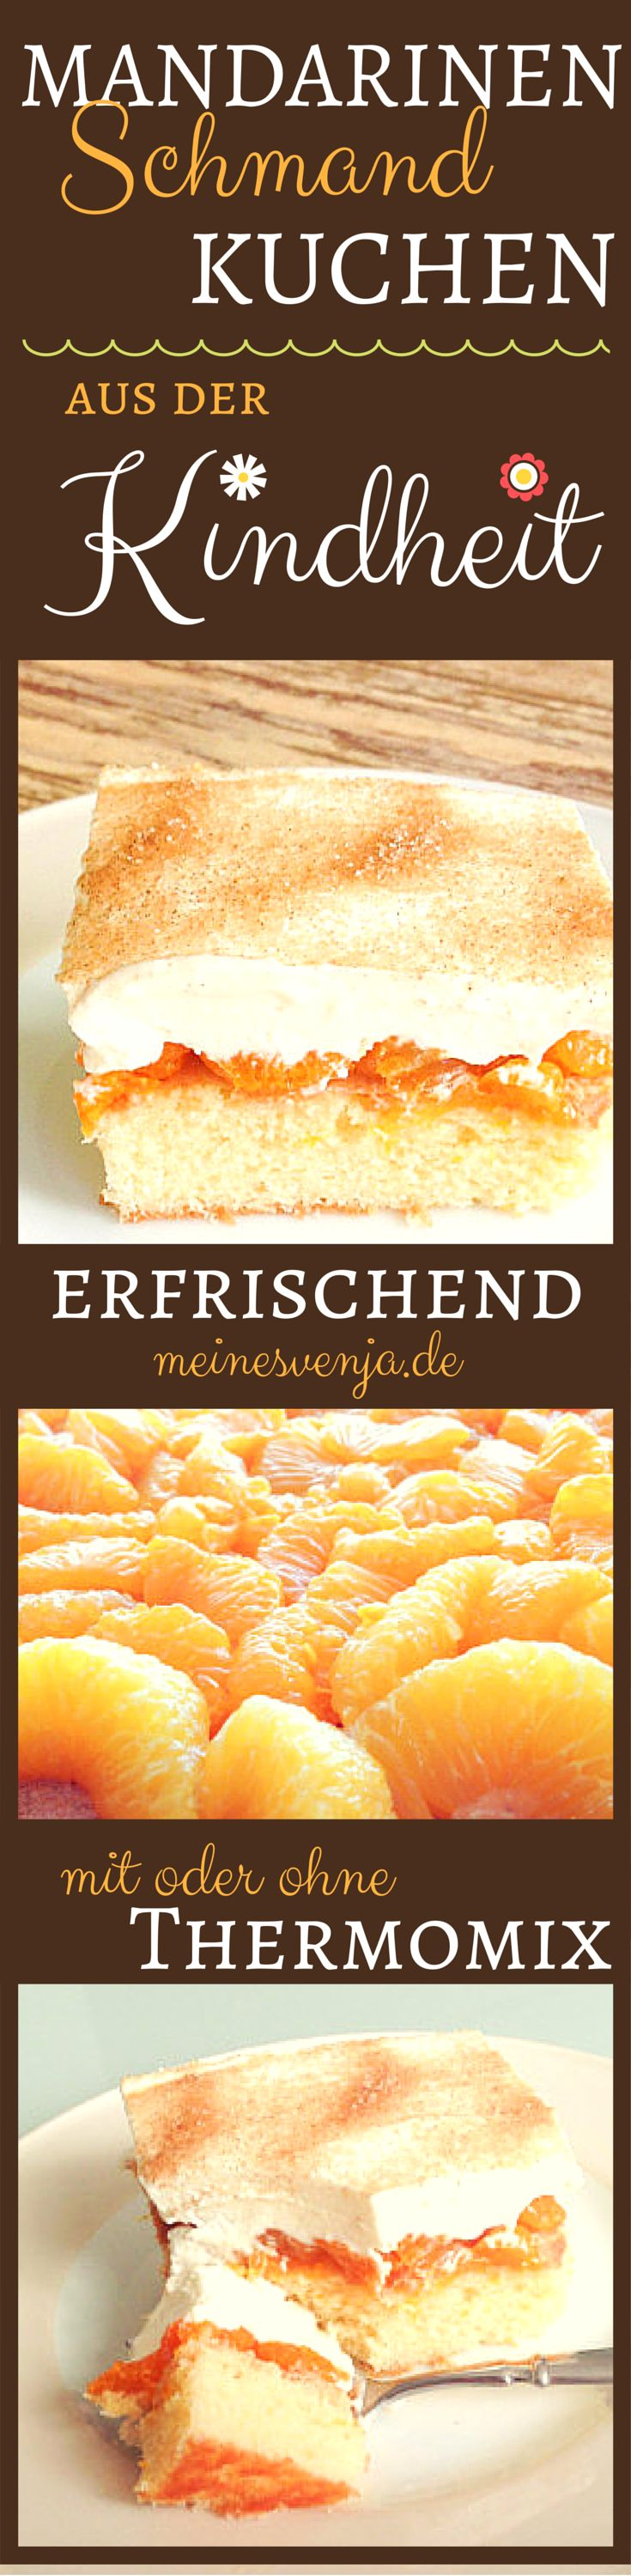 1573 best images about Thermomix on Pinterest  Muesli bars Torte and Kuchen